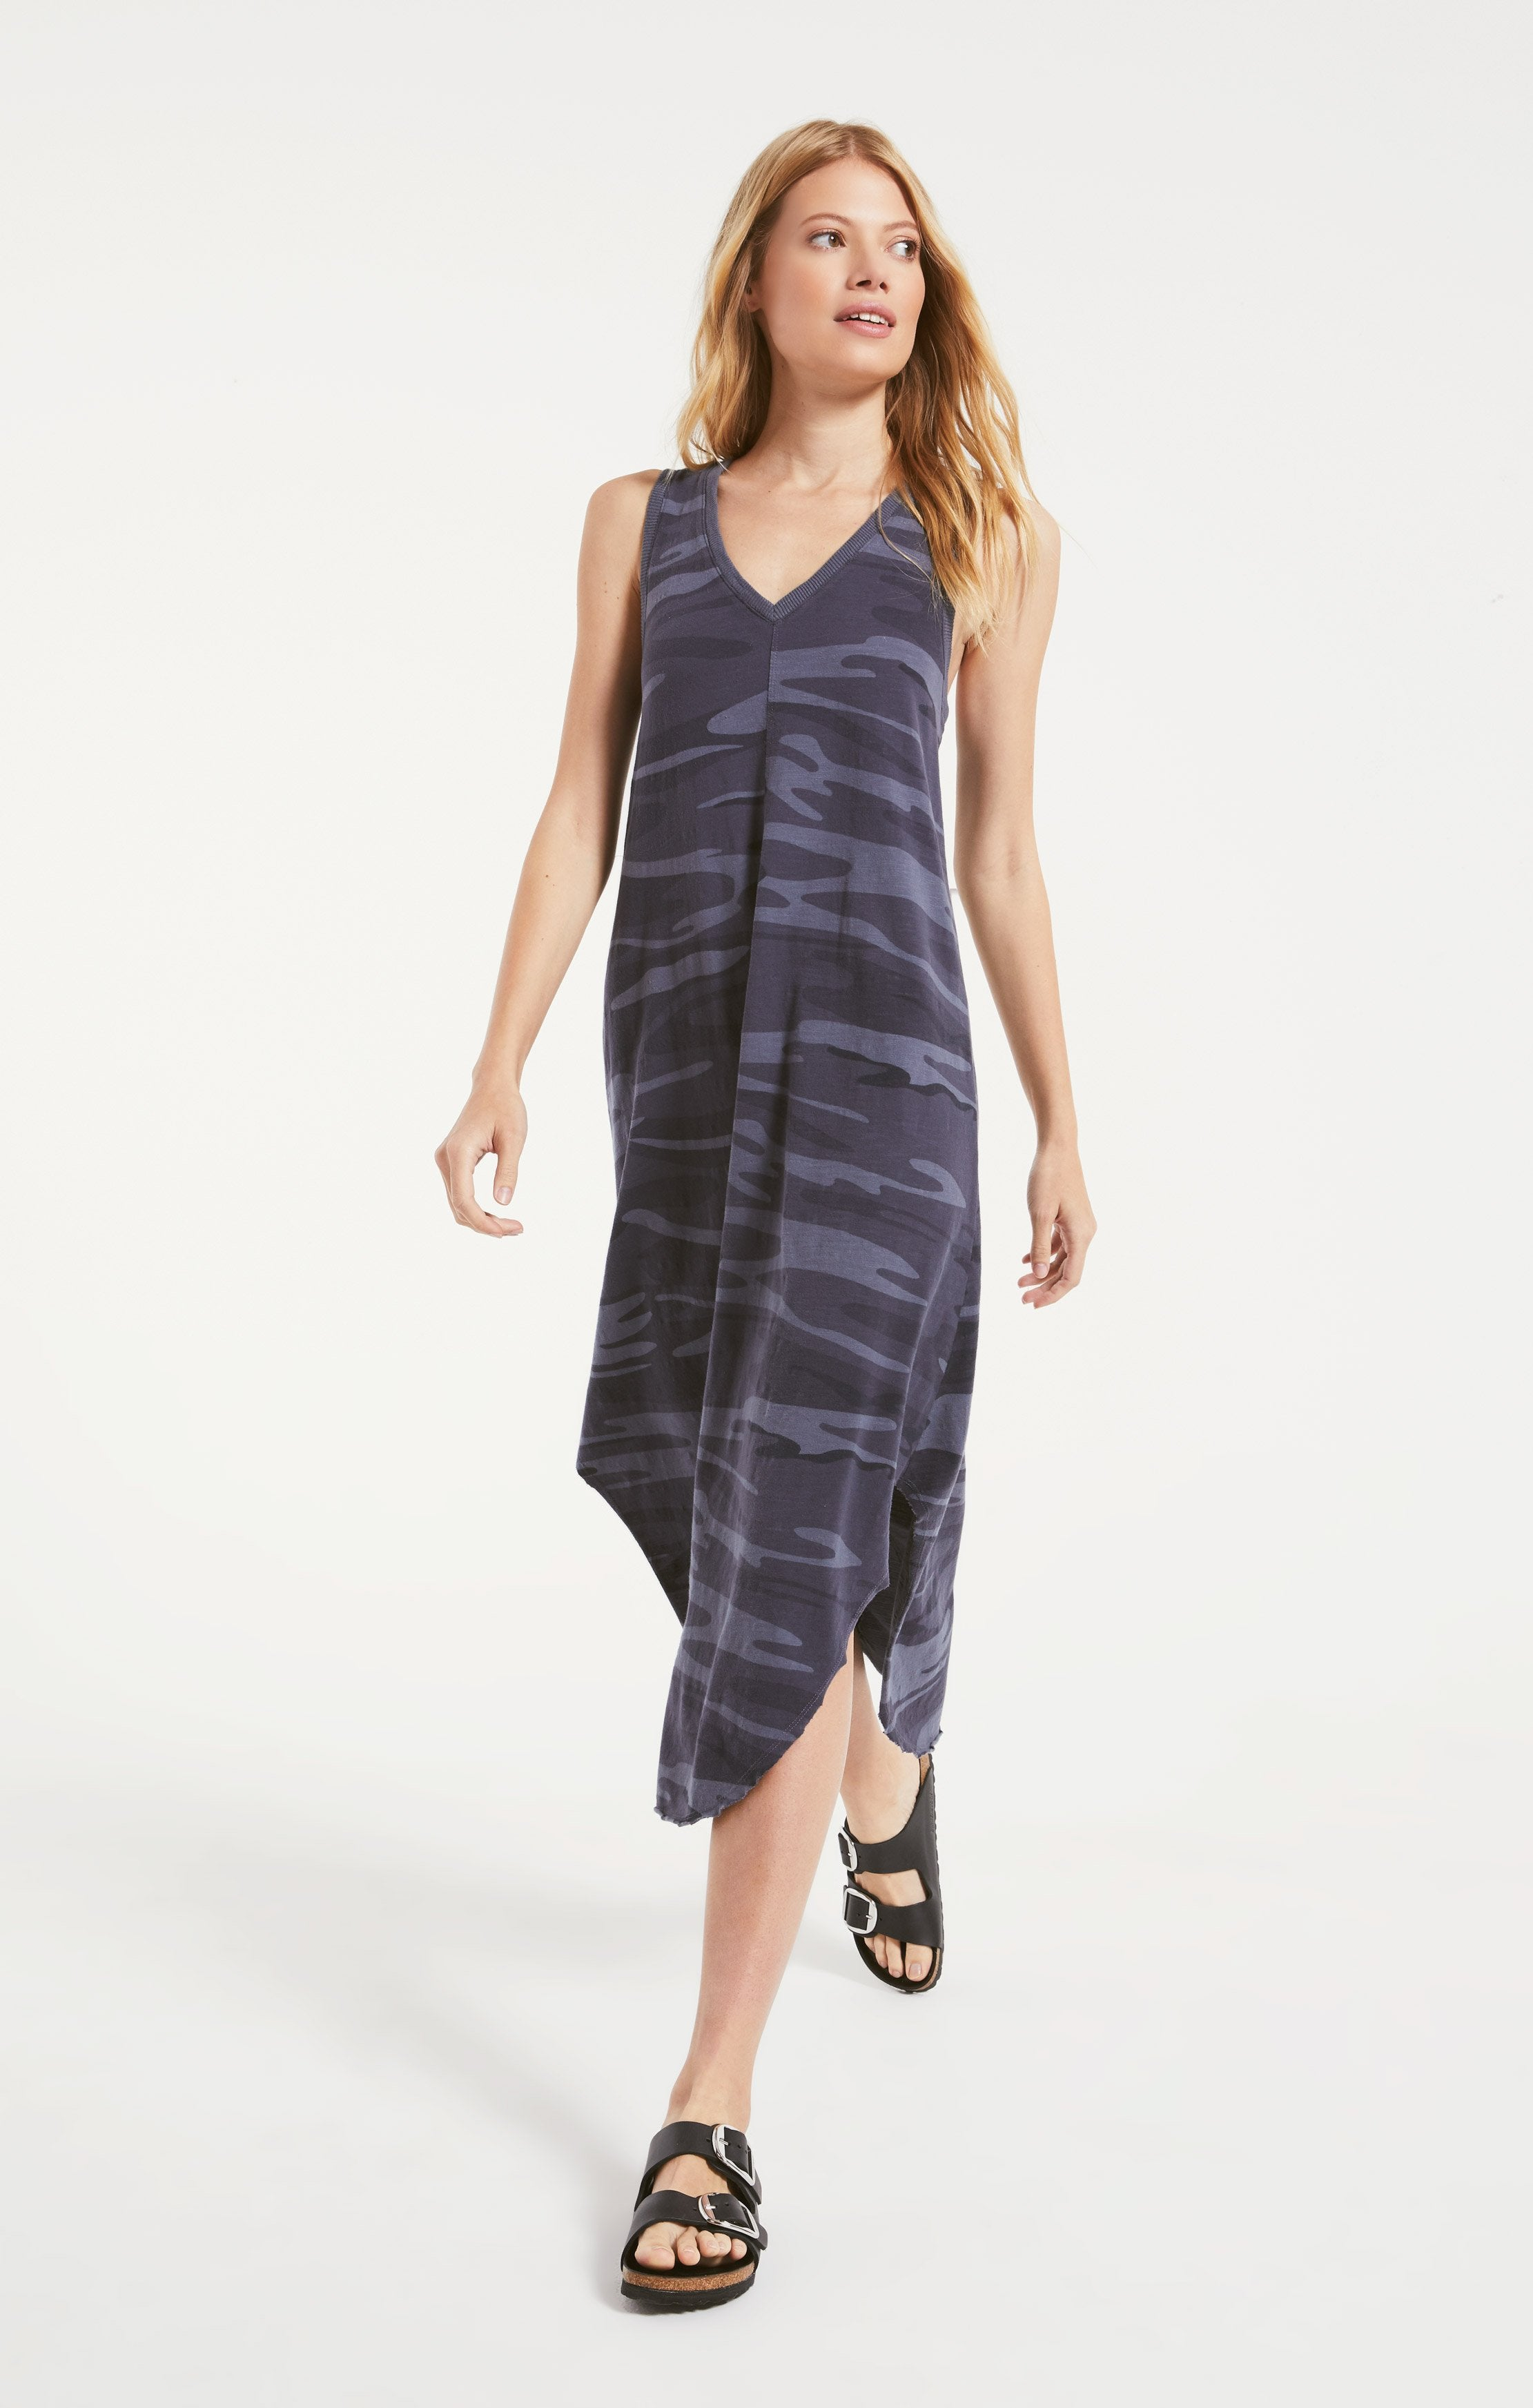 Dresses Camo Reverie Dress Camo Dark Blue